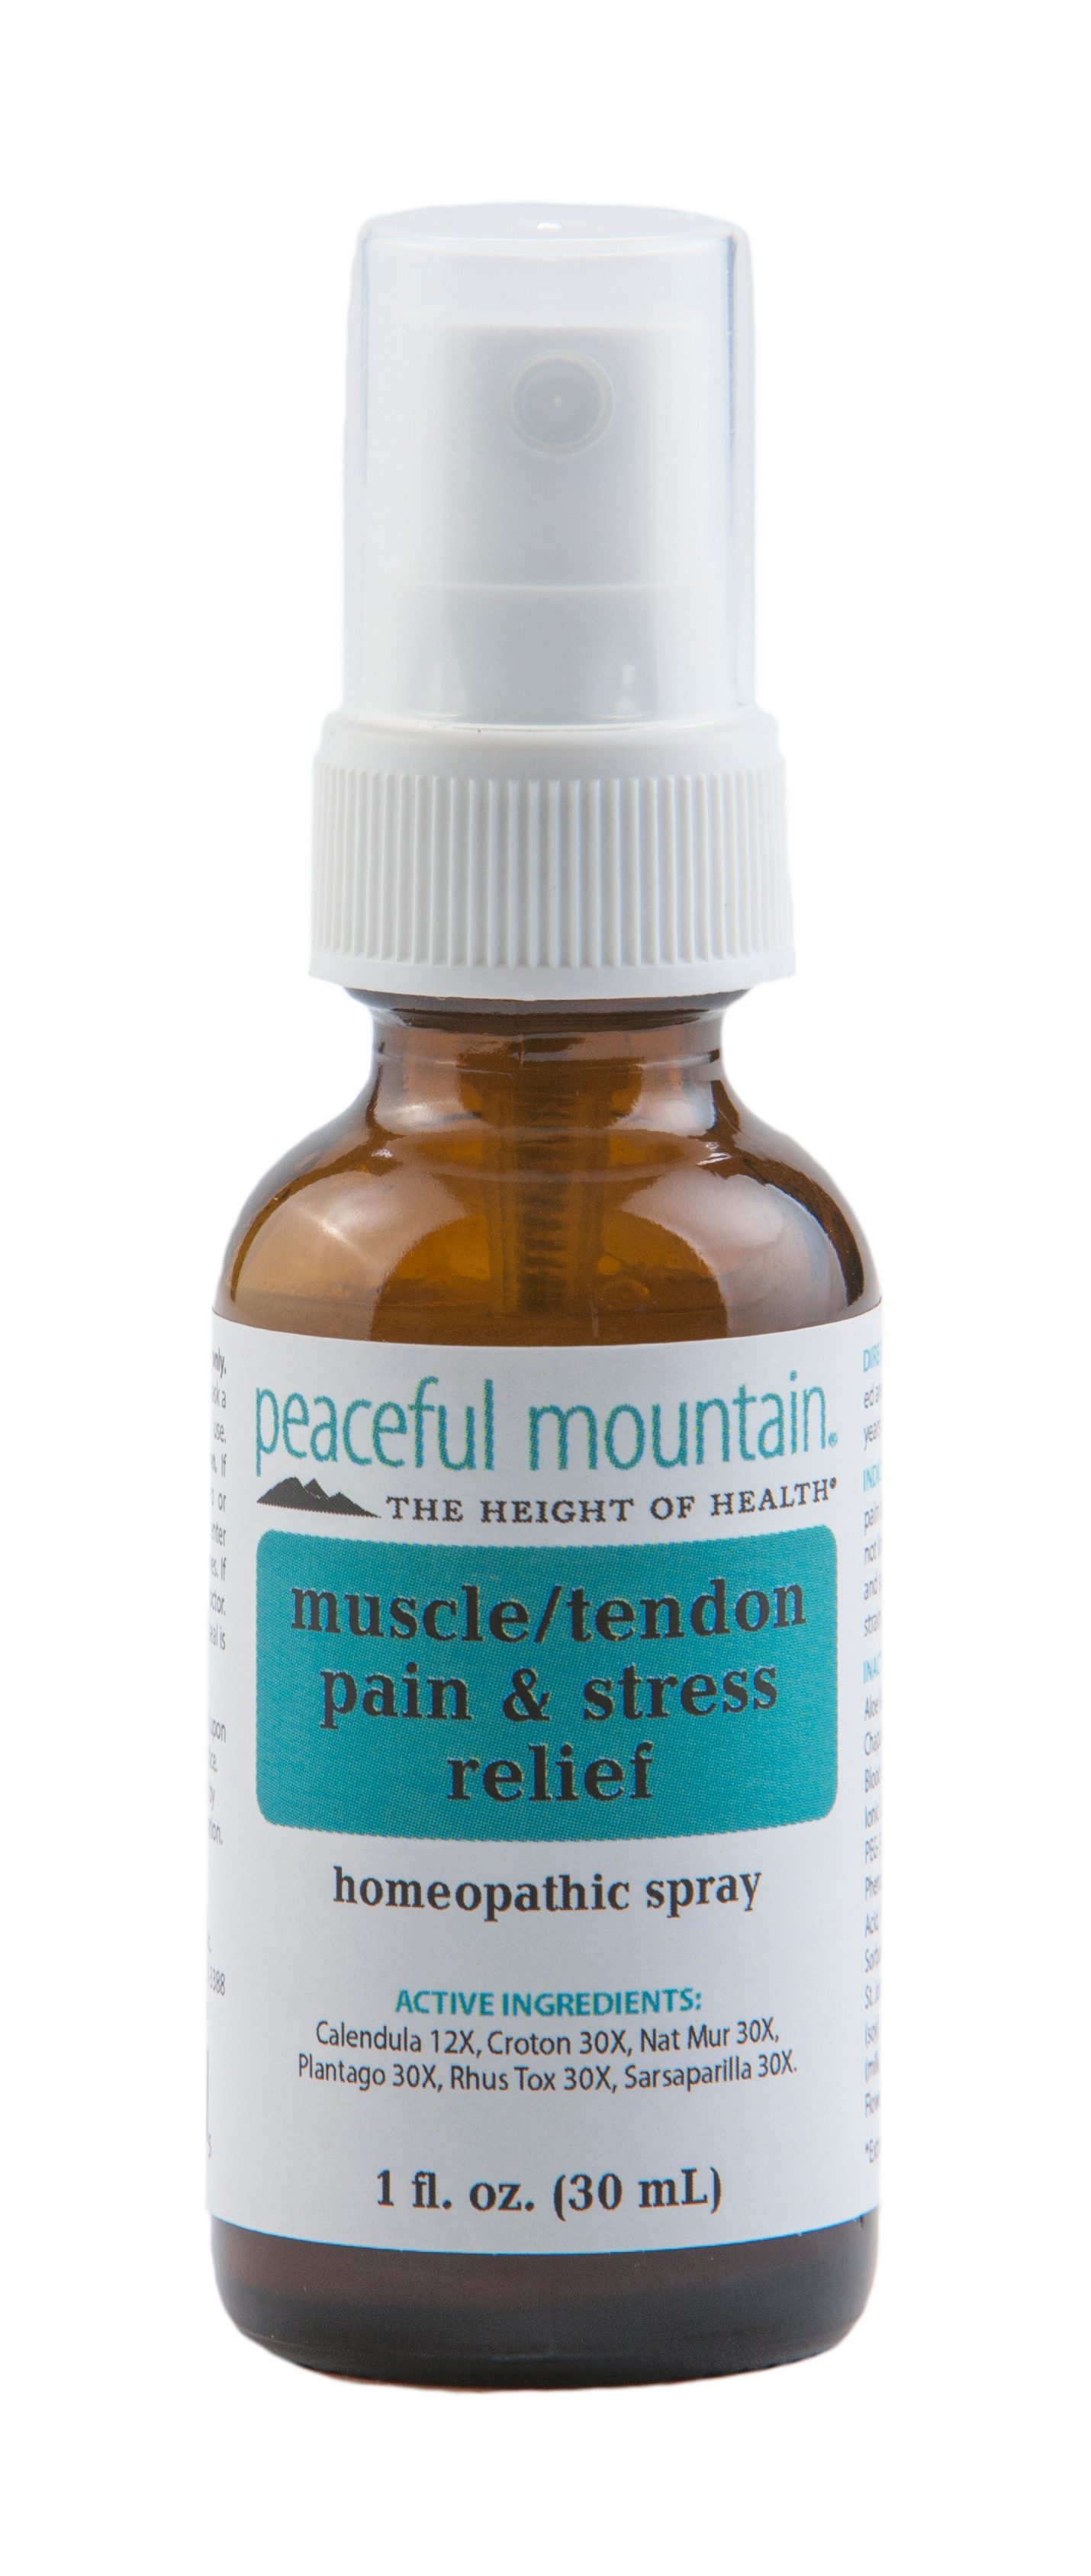 Muscle tendon pain stress